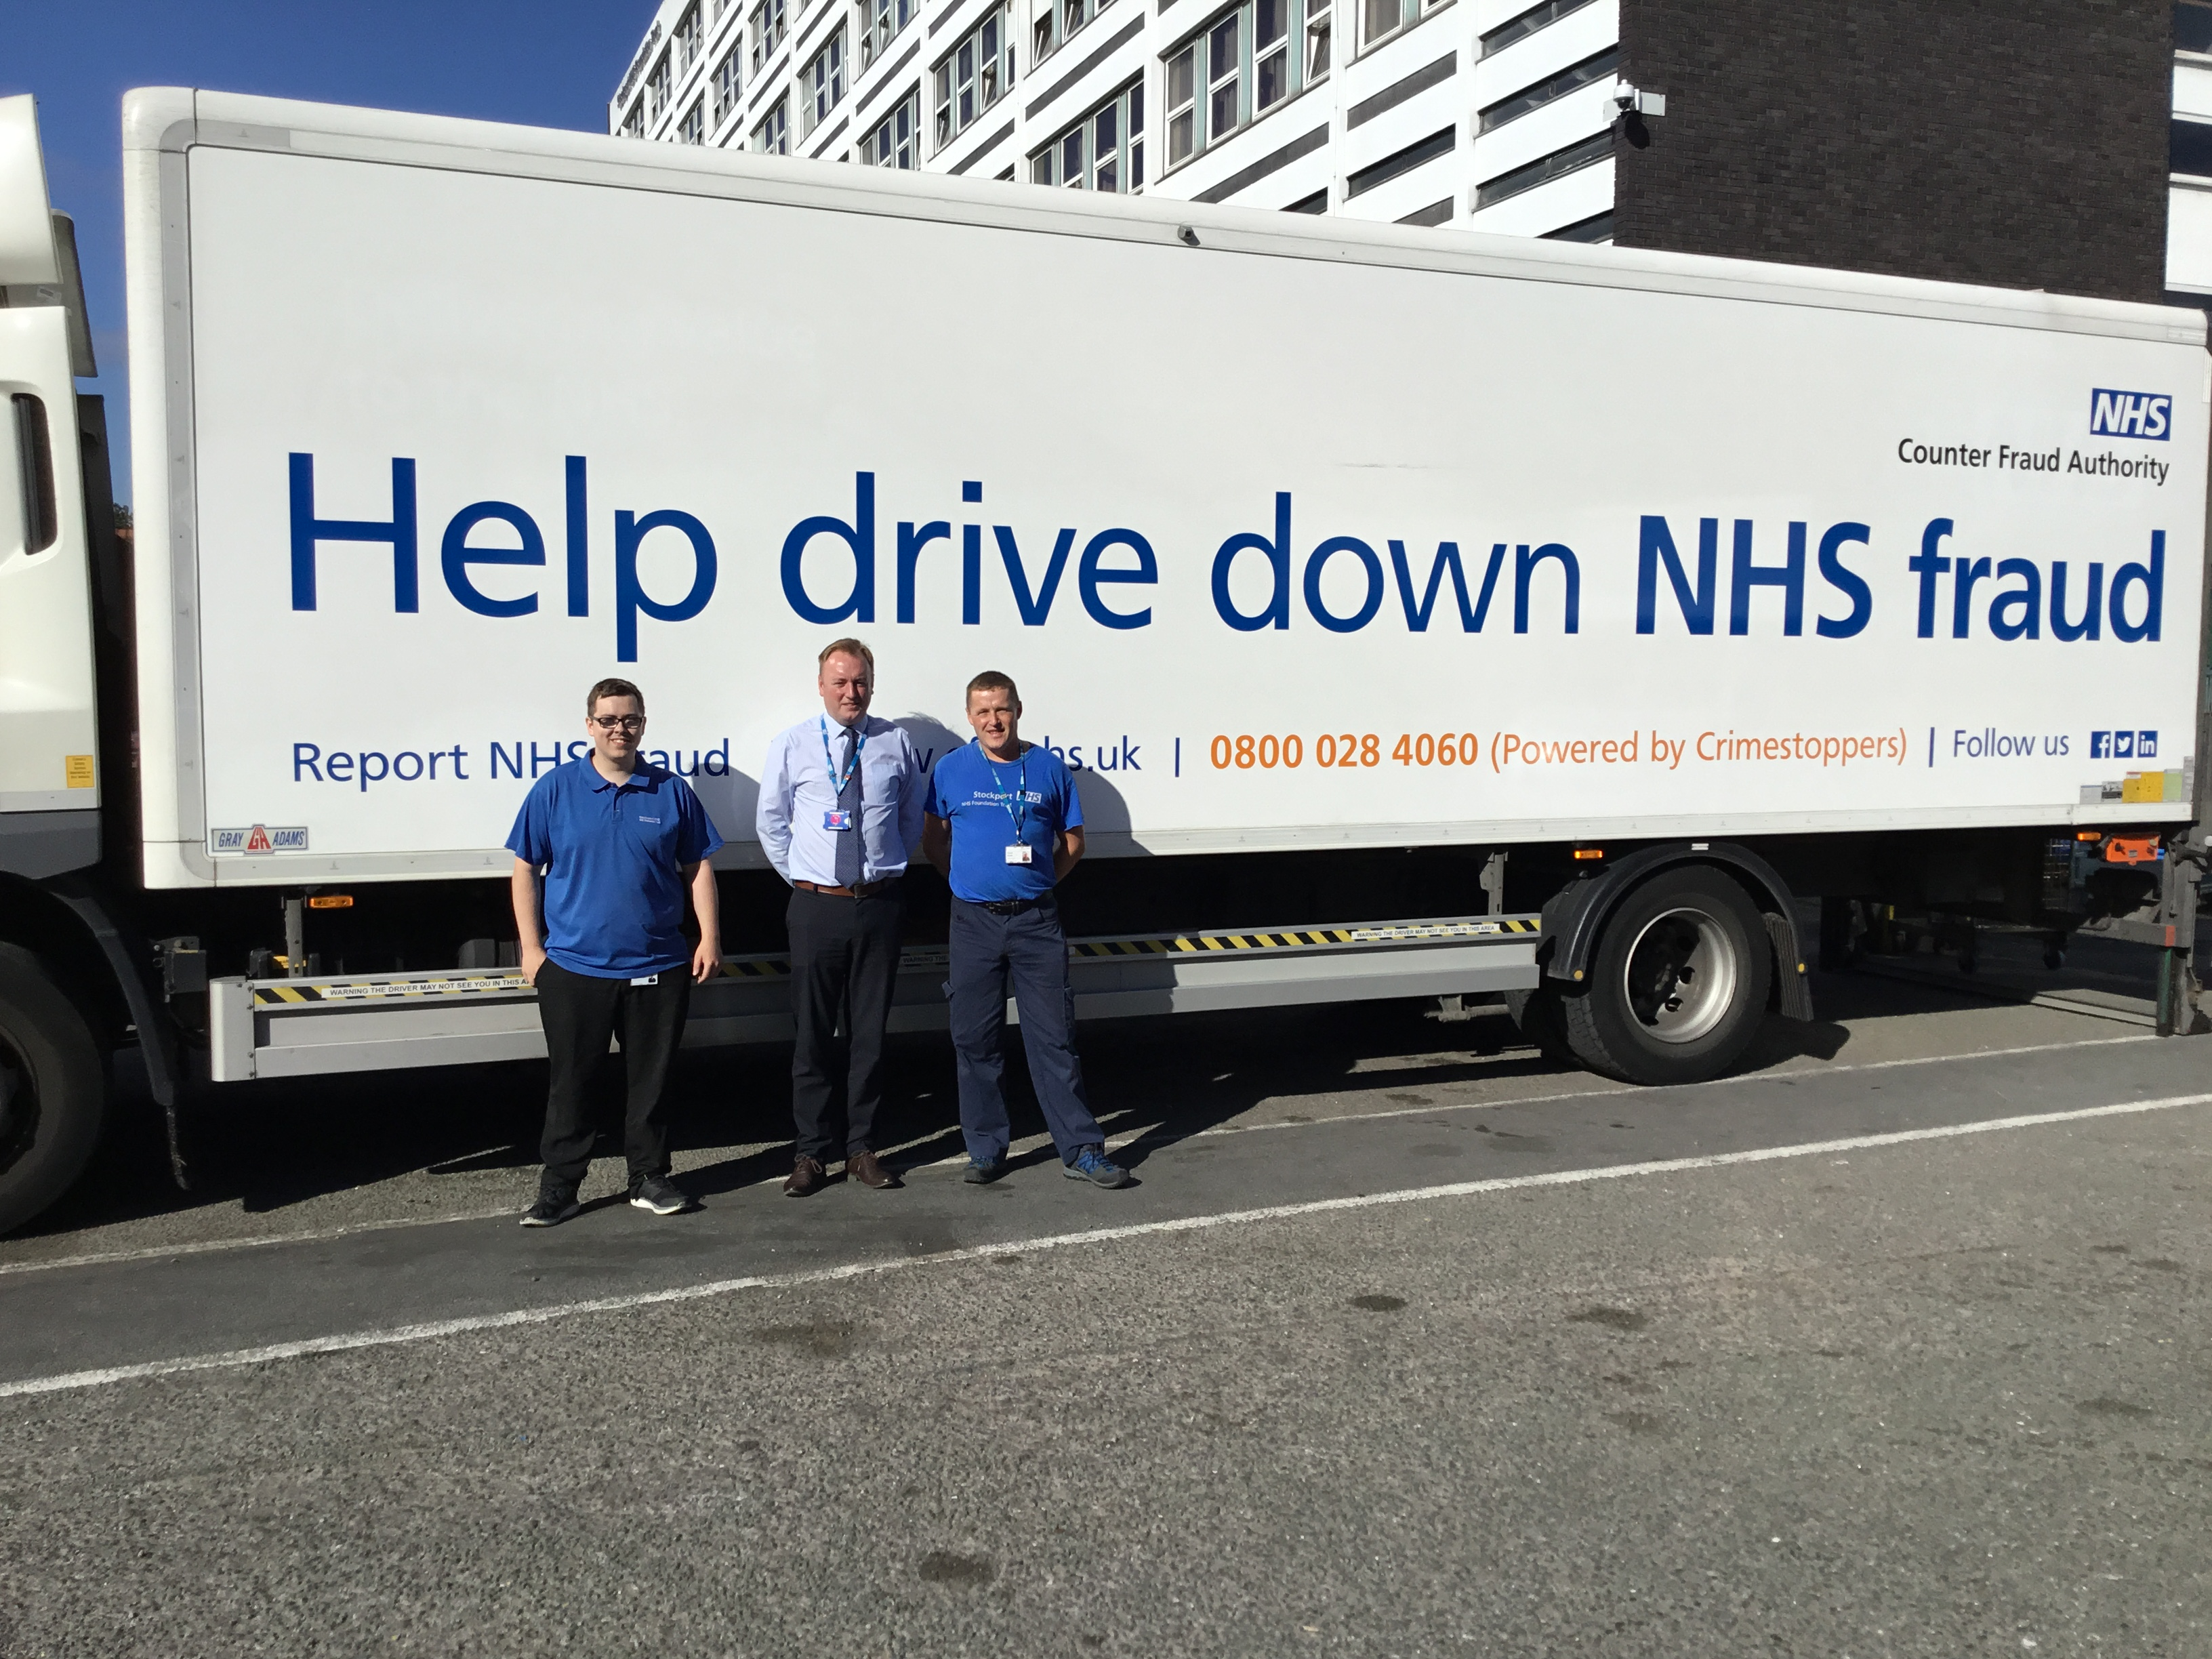 Trucks deliver NHS fraud message